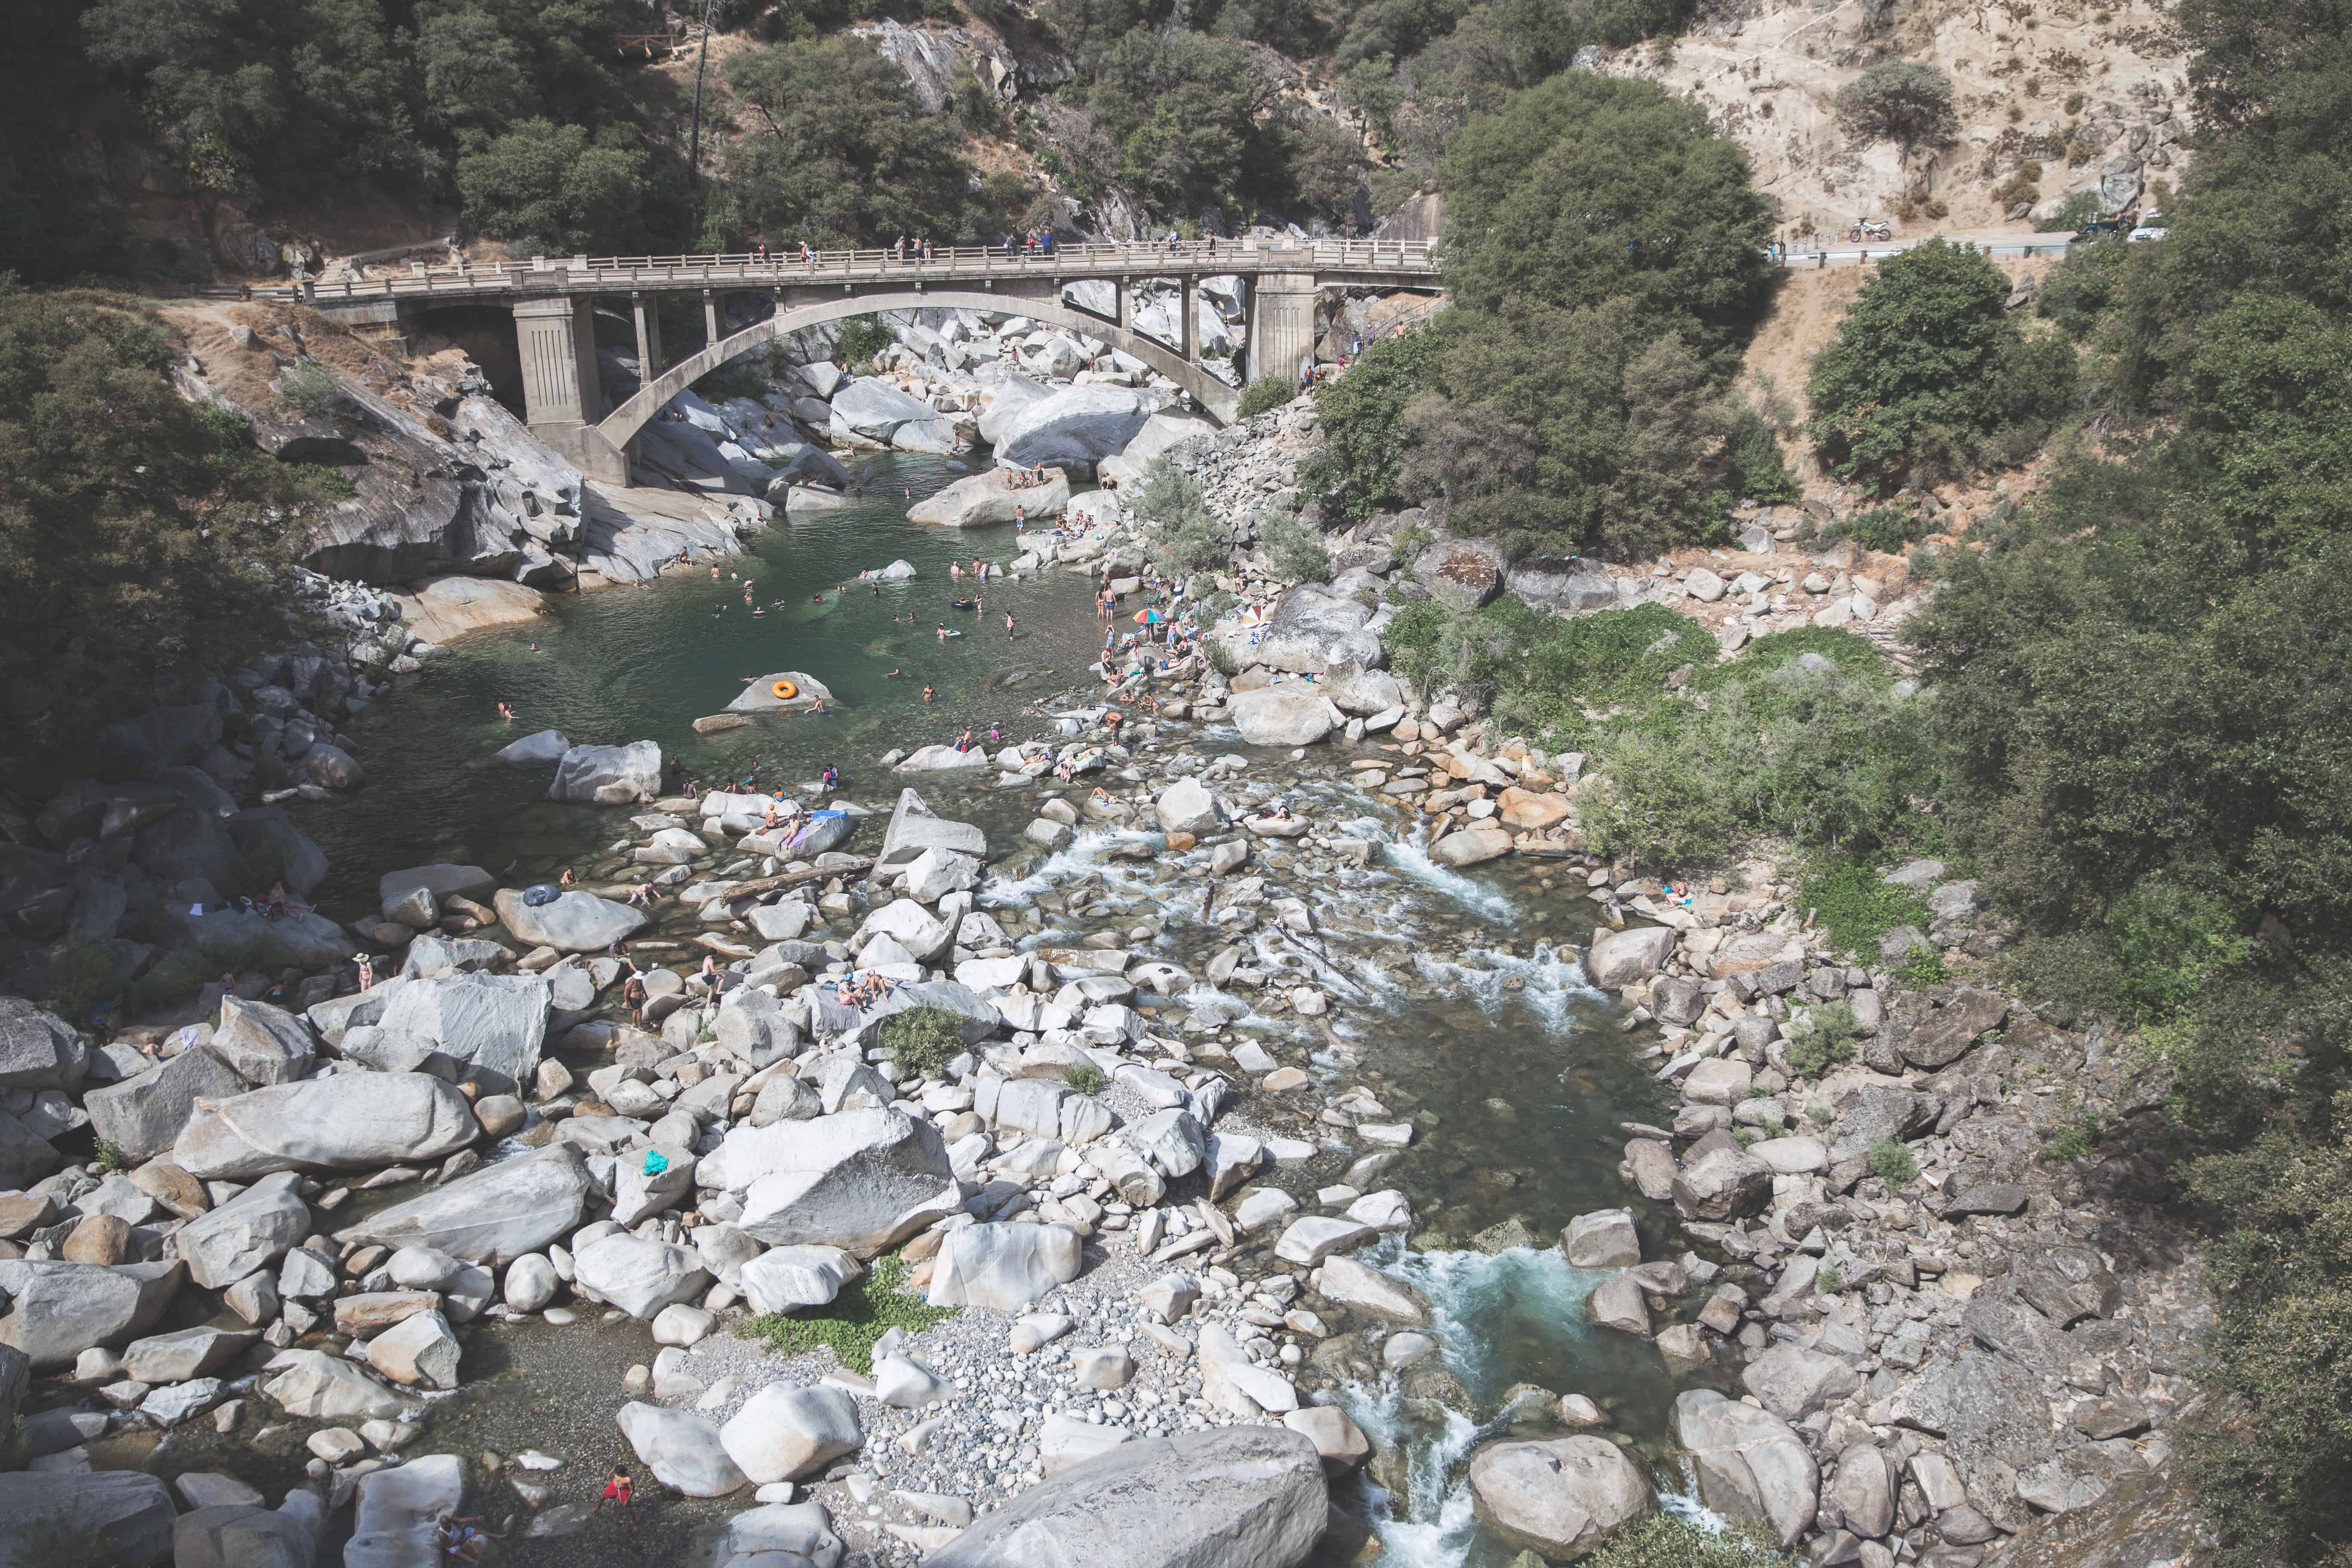 The Yuba River in Gold Country in California